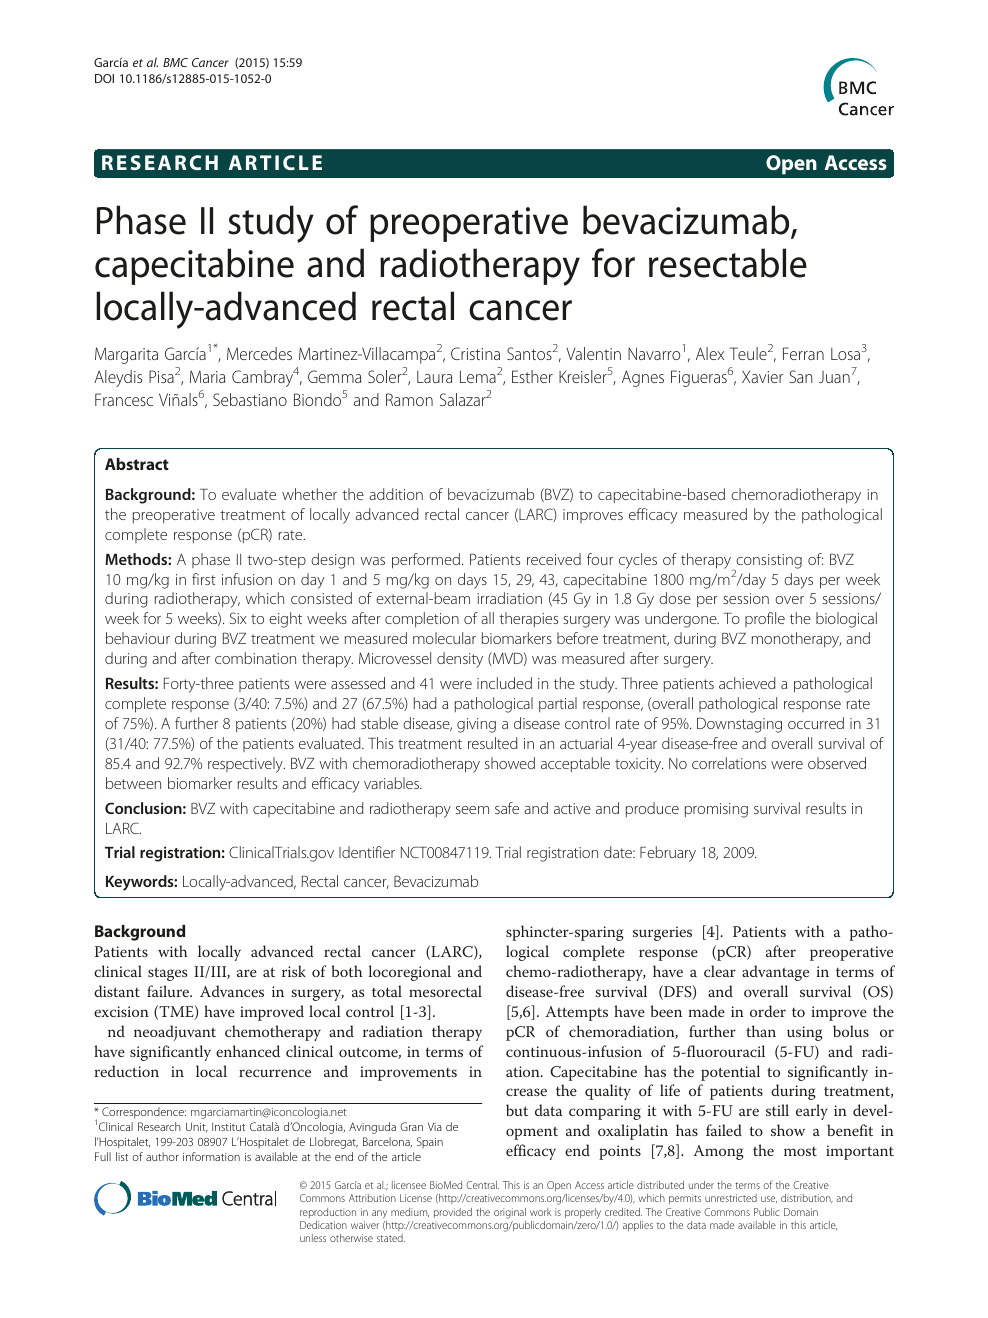 Phase Ii Study Of Preoperative Bevacizumab Capecitabine And Radiotherapy For Resectable Locally Advanced Rectal Cancer Topic Of Research Paper In Clinical Medicine Download Scholarly Article Pdf And Read For Free On Cyberleninka